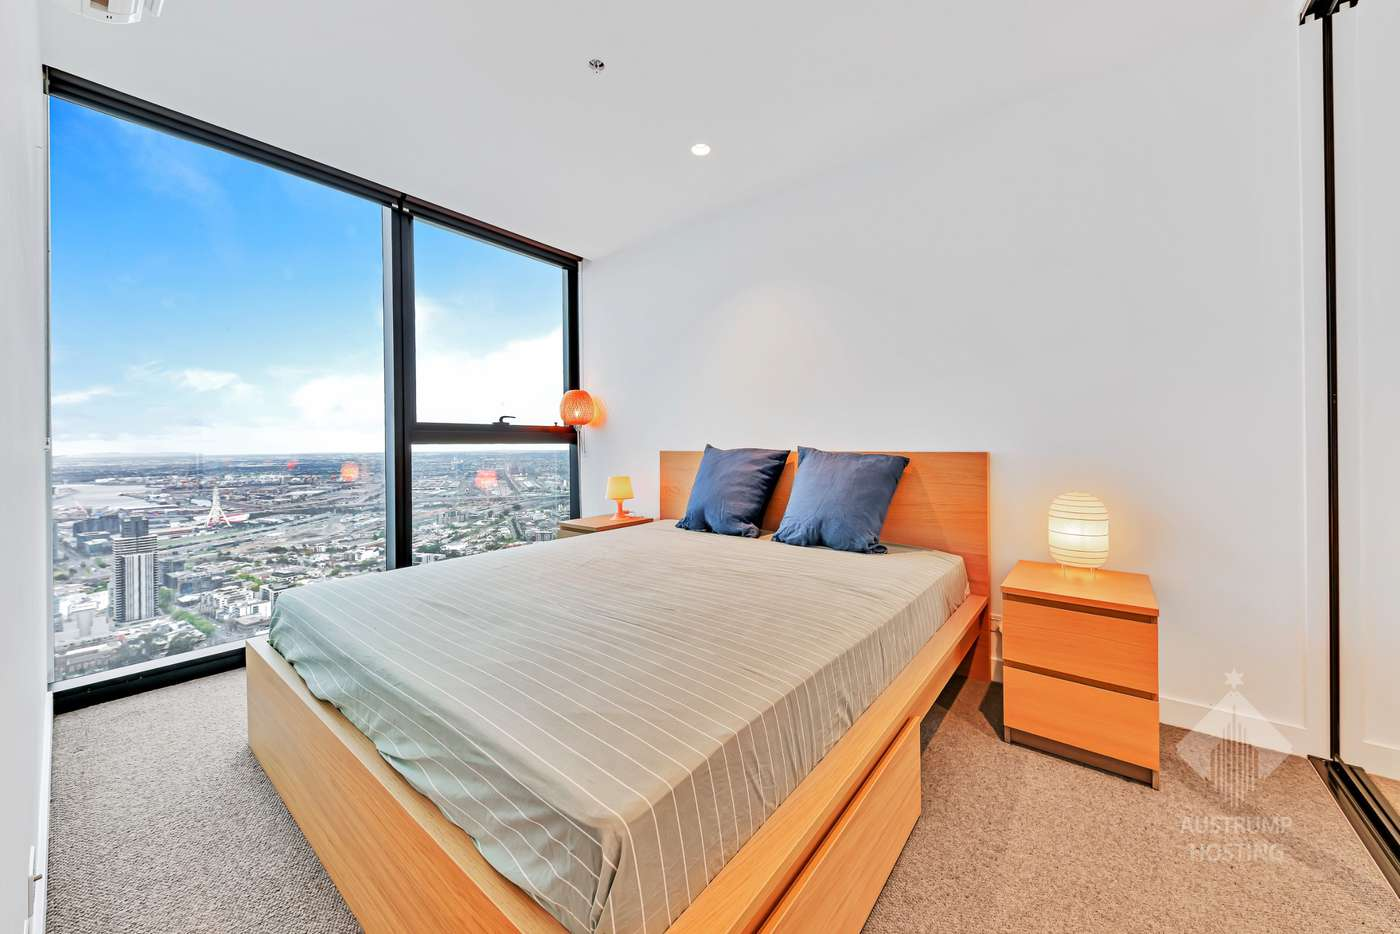 Seventh view of Homely apartment listing, 6707/462 Elizabeth Street, Melbourne VIC 3000